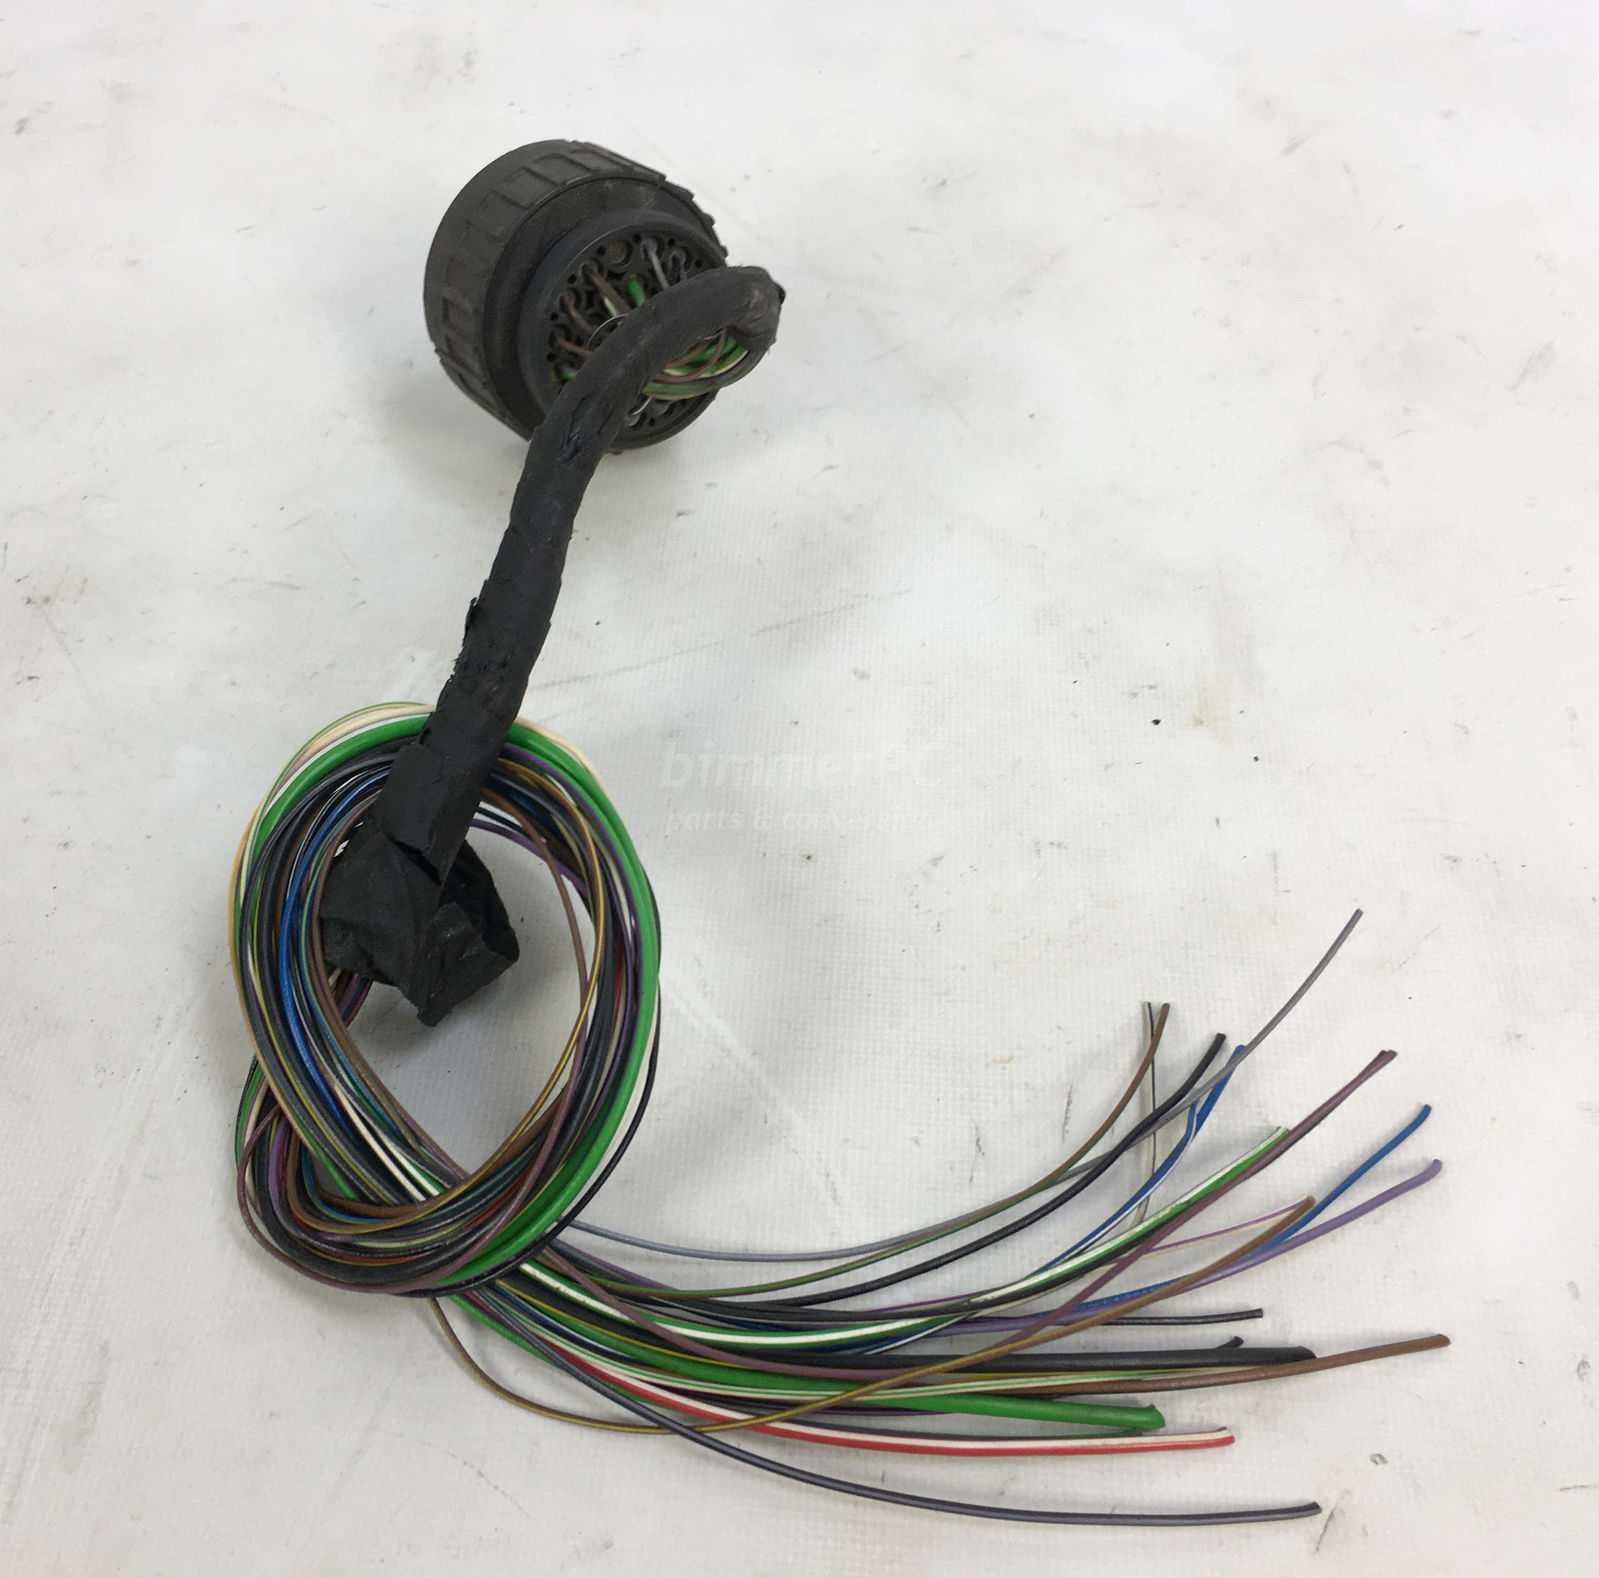 hight resolution of picture of bmw x20 engine bay wiring harness round connector m60 v8 e34 e32 for sale